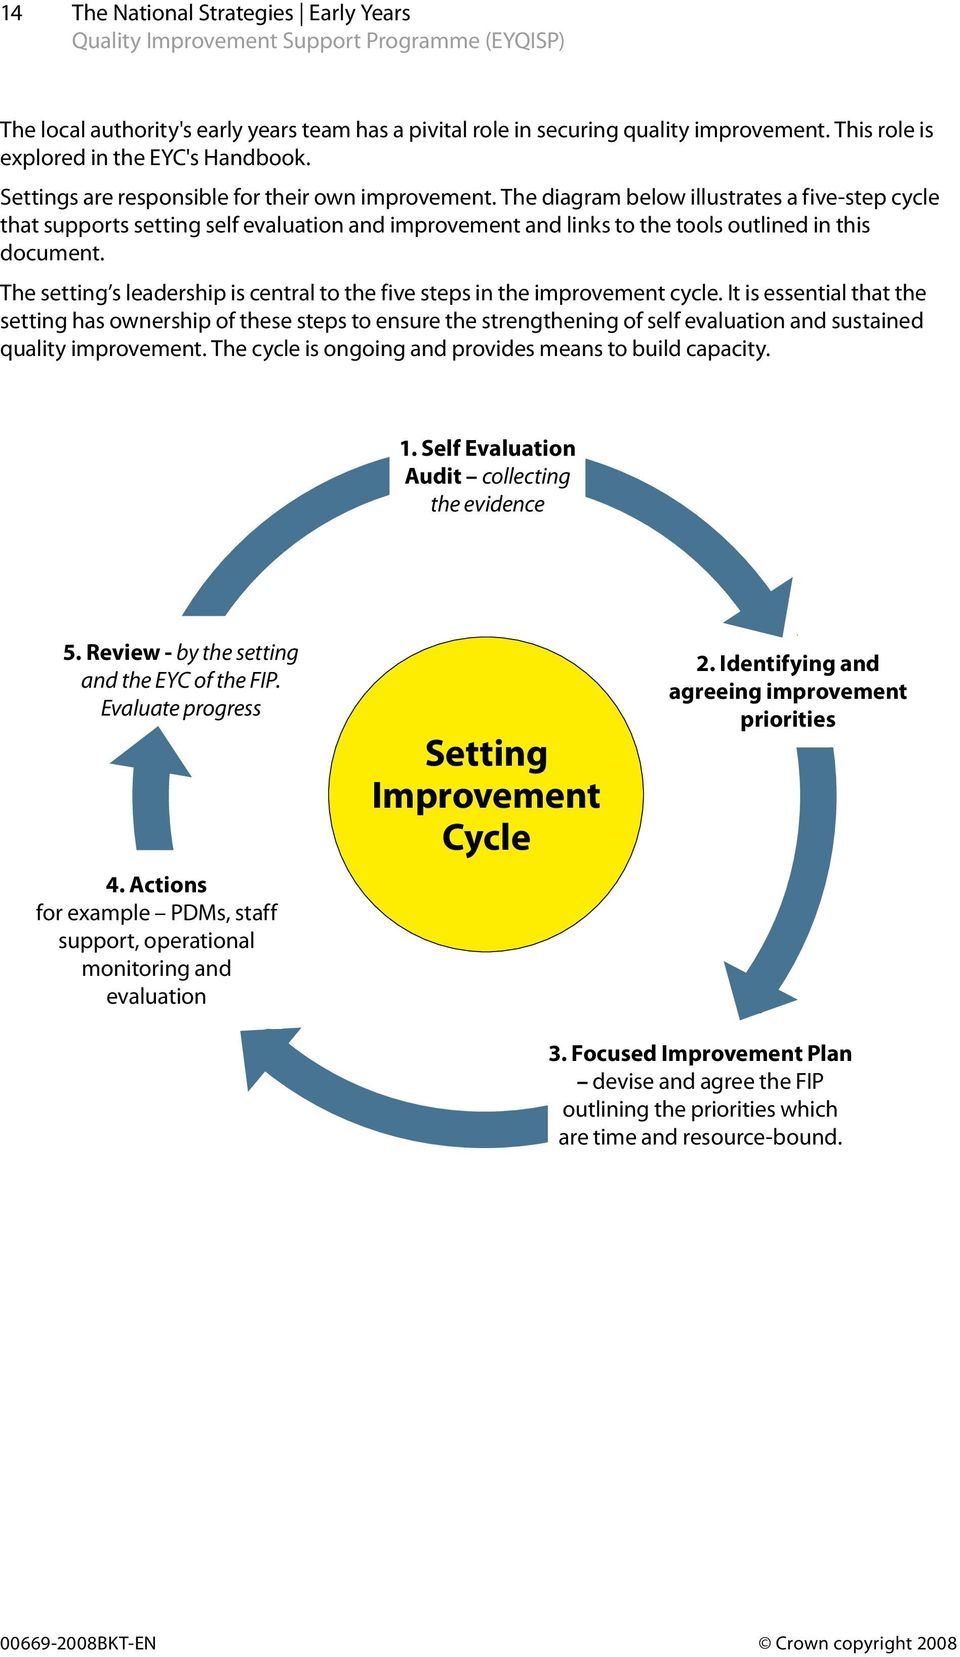 The diagram below illustrates a five-step cycle that supports setting self evaluation and improvement and links to the tools outlined in this document.